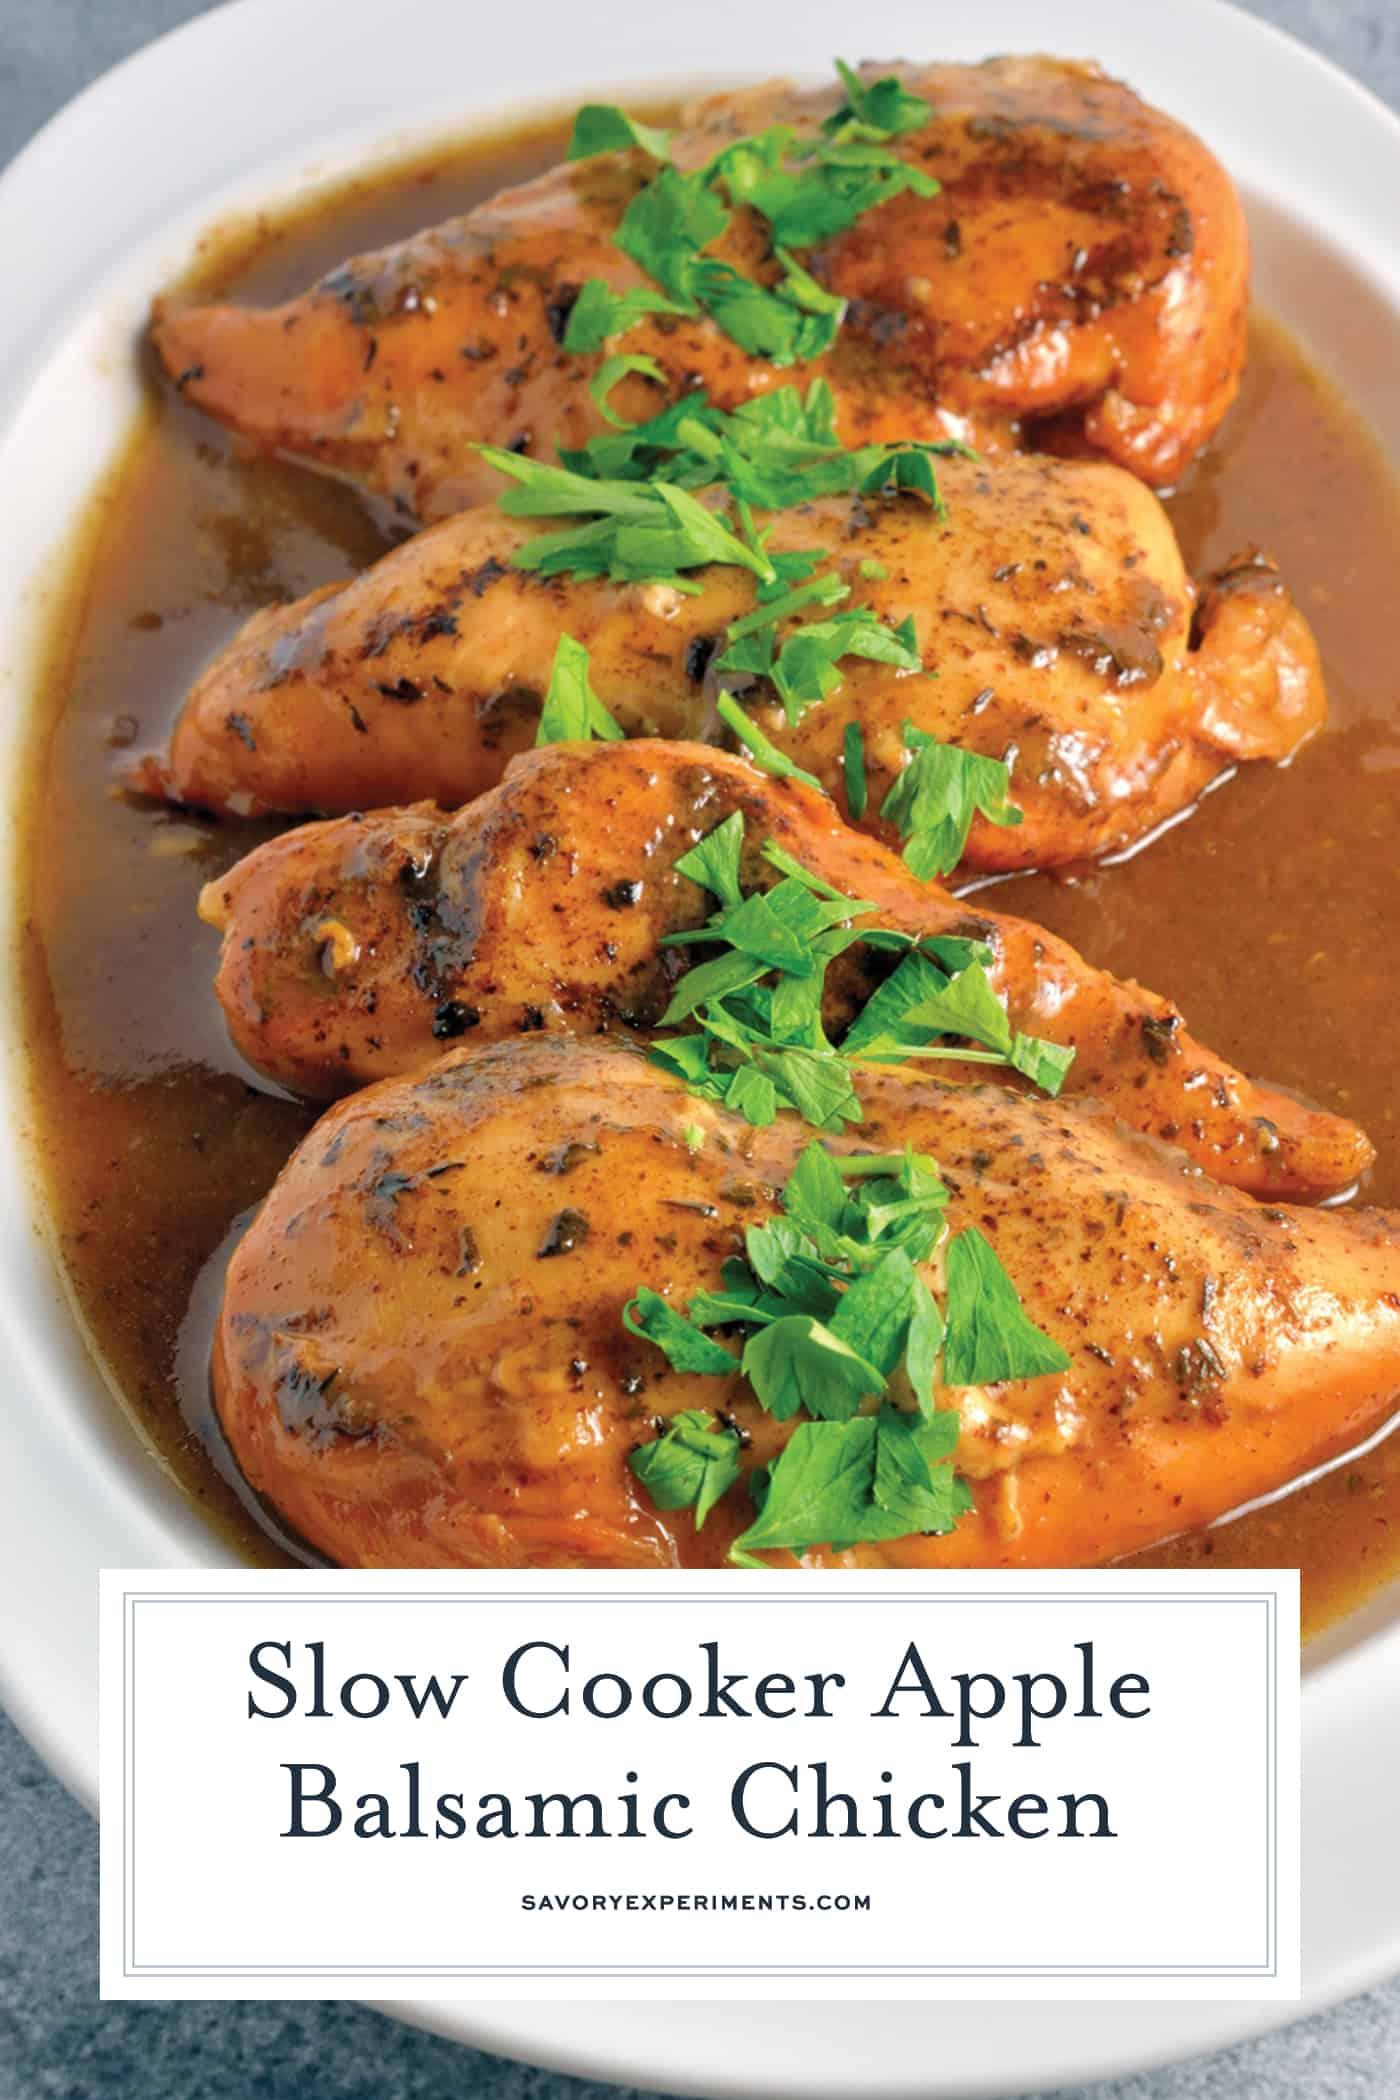 Slow Cooker Apple Balsamic Chicken is big on flavor and a bonafide crowd pleaser. Serve with buttered rice or noodles for a simple and delicious meal. #slowcookerapplebalsamicchicken #slowcooker #balsamicchicken www.savoryexperiments.com